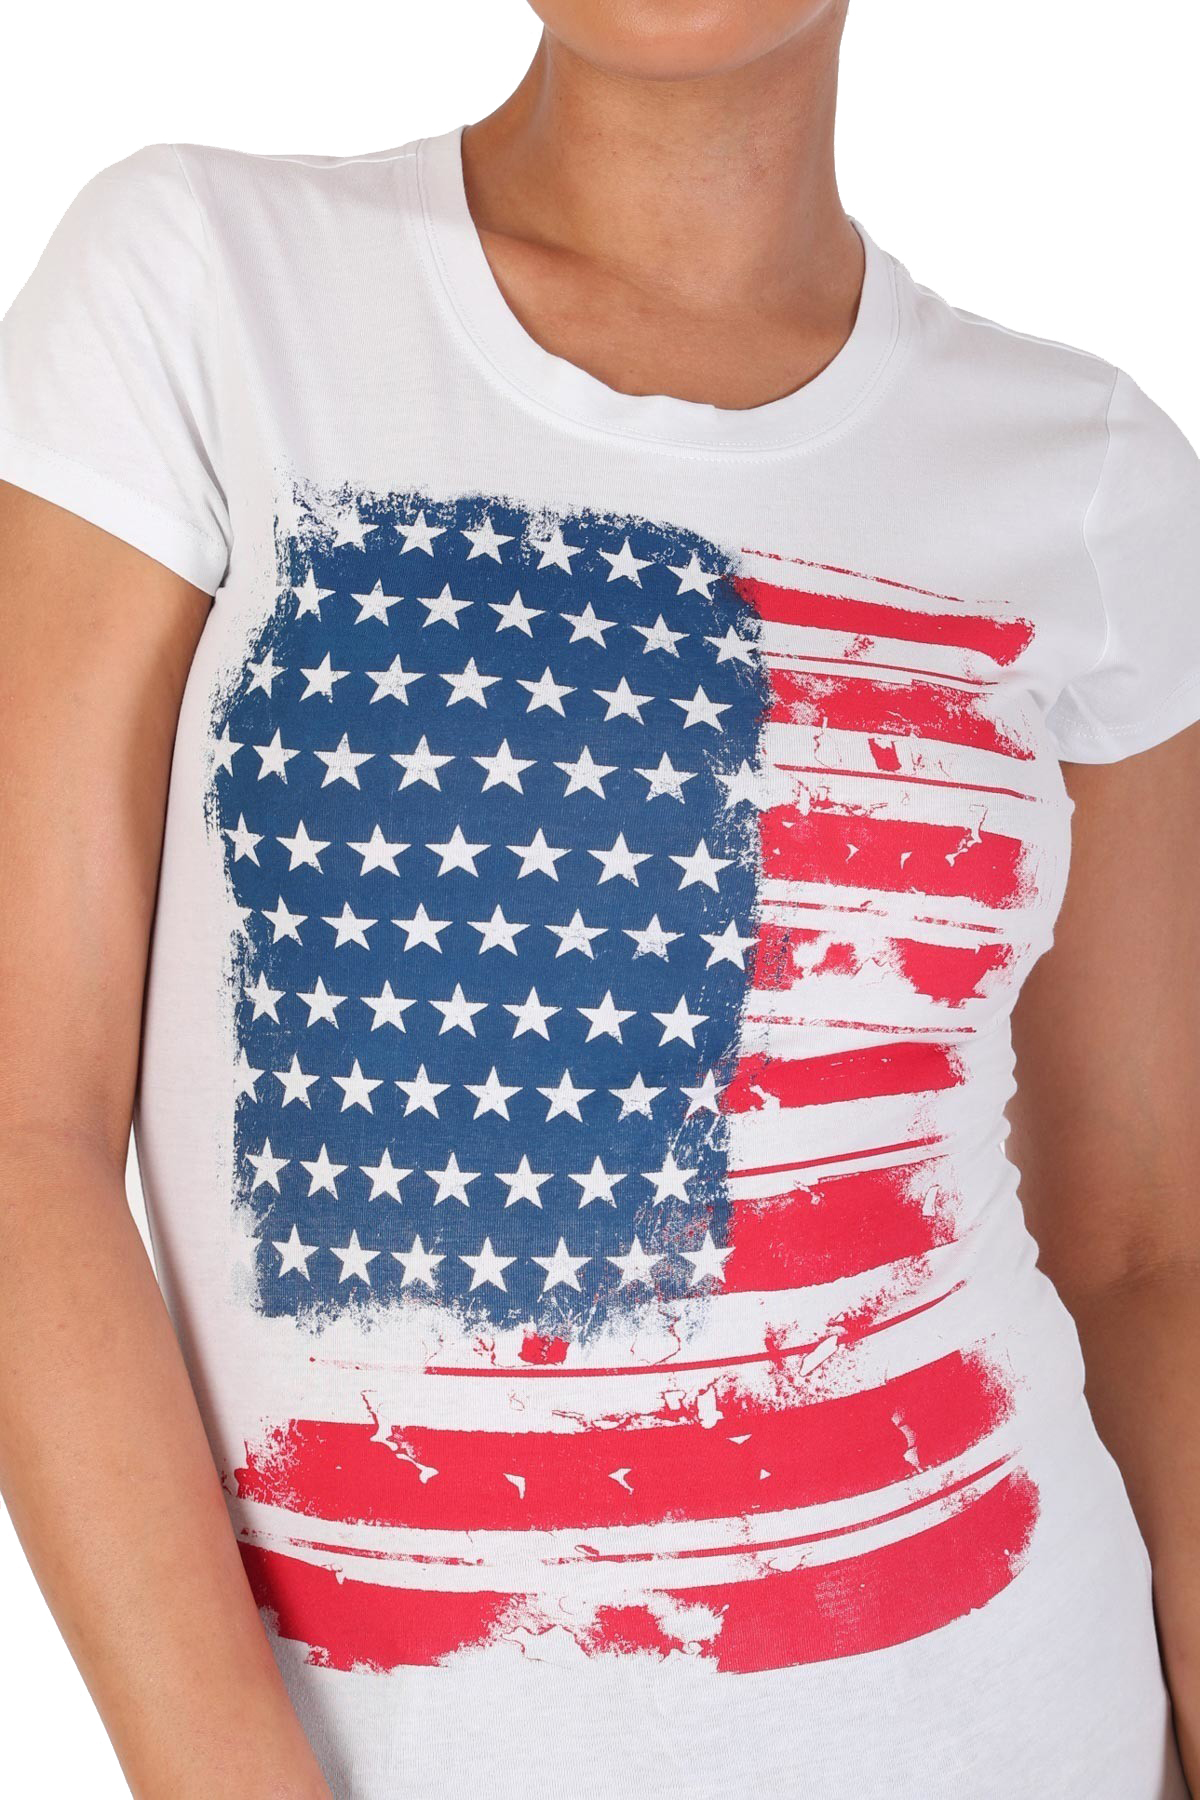 Women-039-s-Juniors-Patriotic-Casual-Graphic-Print-Short-Sleeve-T-Shirt-Top miniature 10